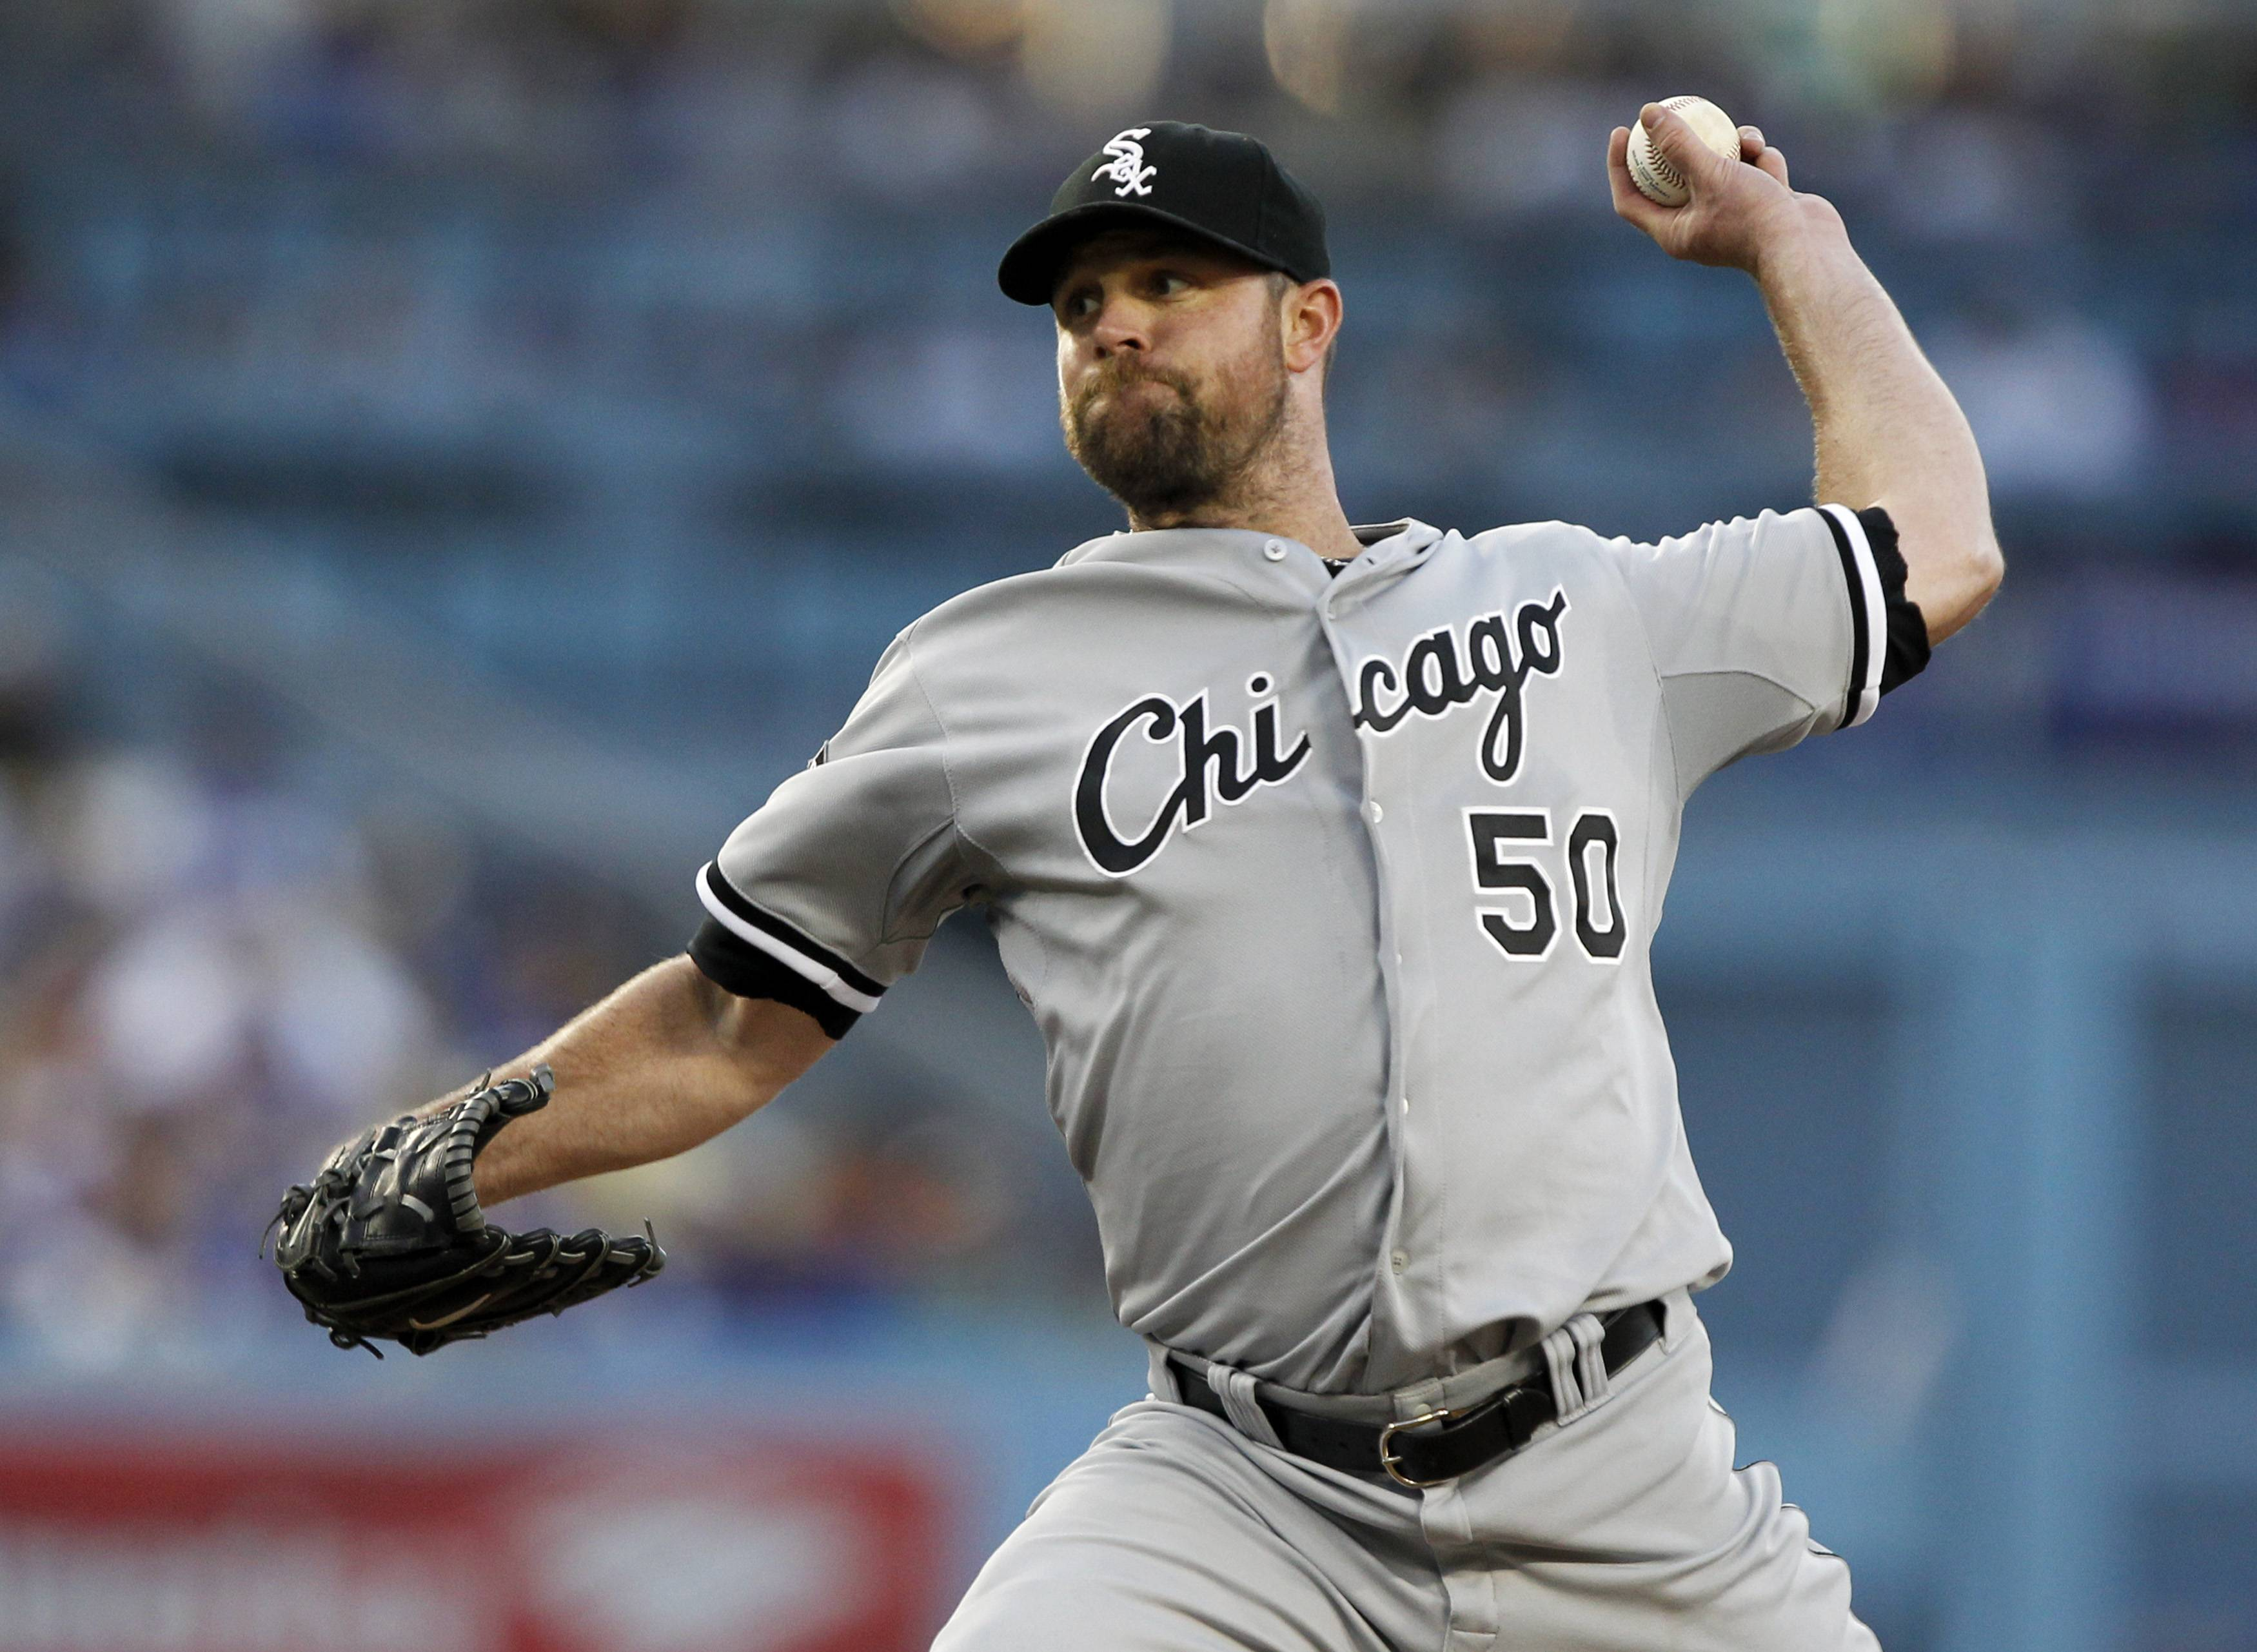 In Wednesday night's 2-1 victory over the Dodgers in Los Angeles, starting pitcher John Danks continued to make positive strides, allowing only 1 run on 2 hits in 7⅓ innings. Still, the Sox will likely look to today's MLB draft to fill the pitching void.